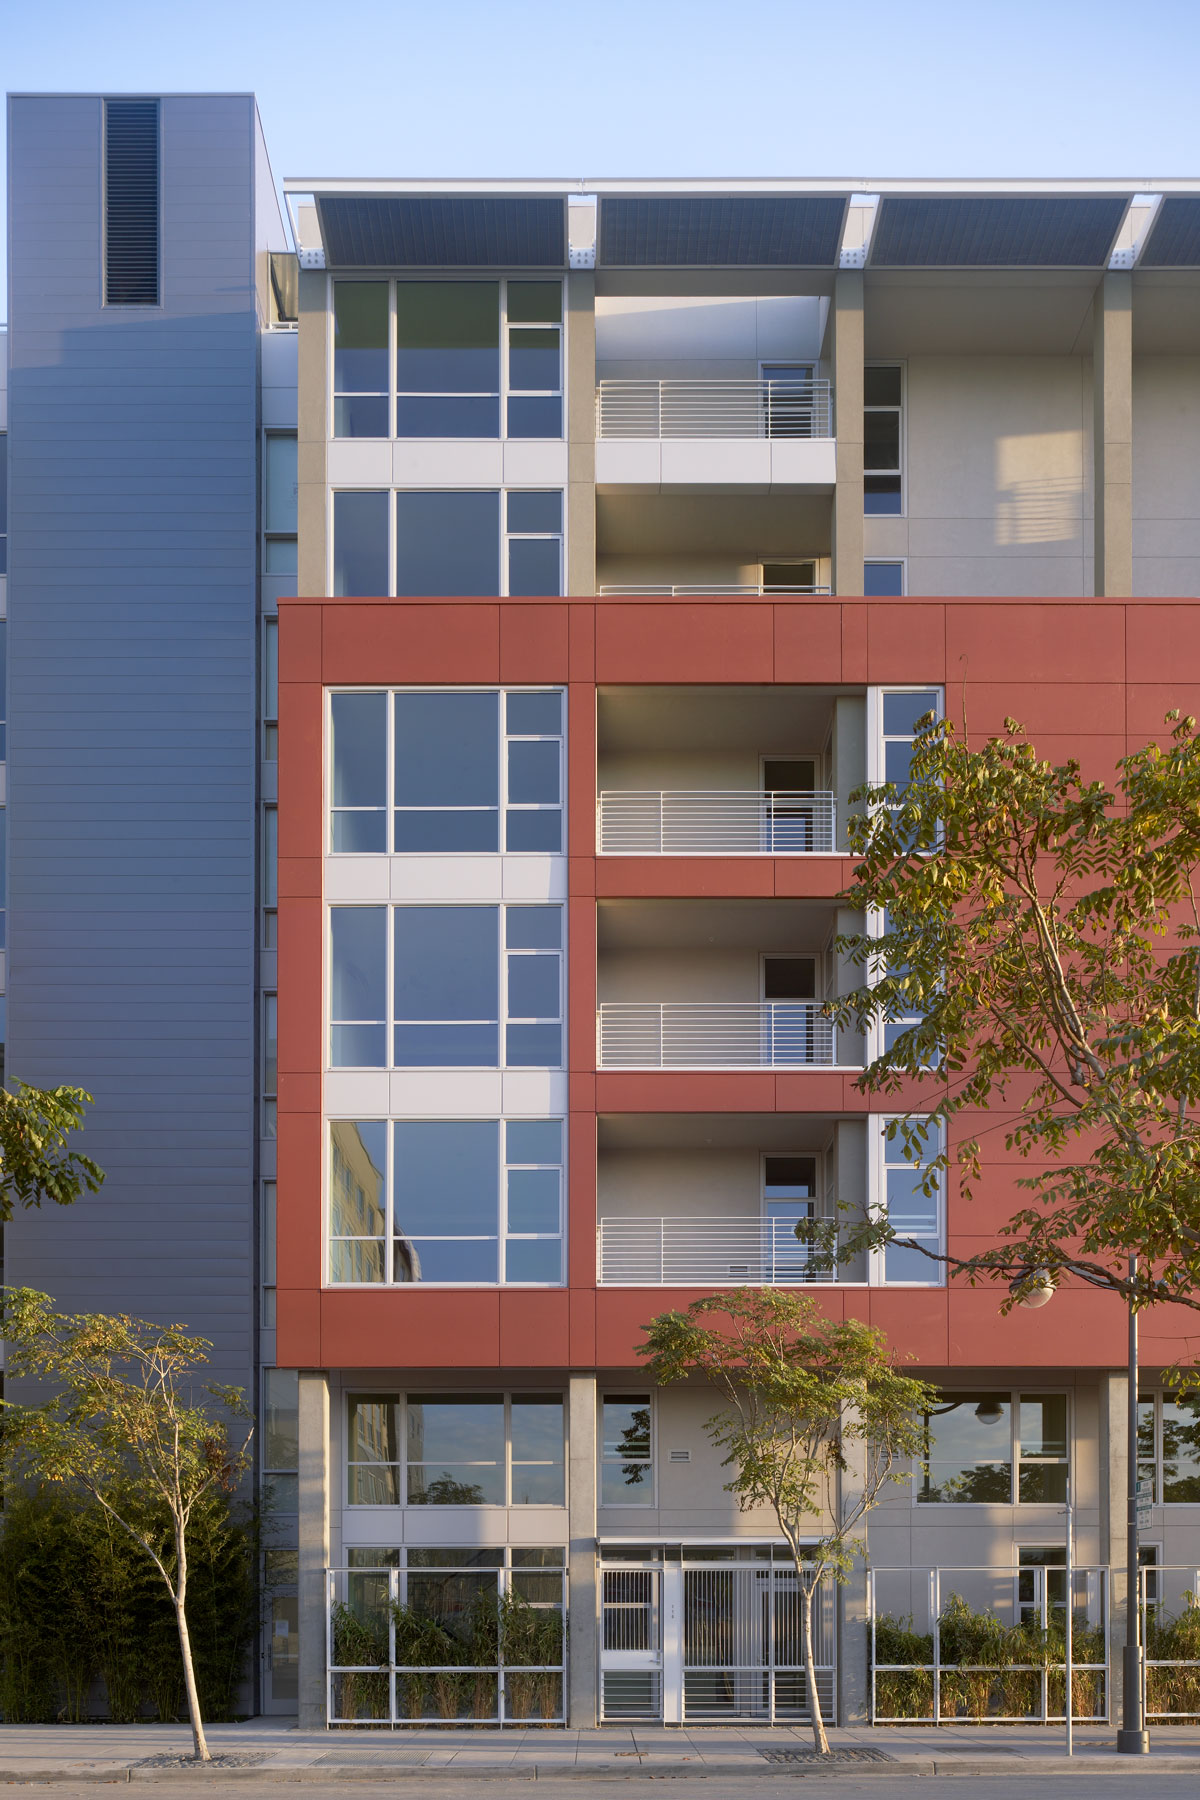 235 Berry Street is one of the first housing developments to be built in San Francisco's emerging Mission Bay neighborhood.